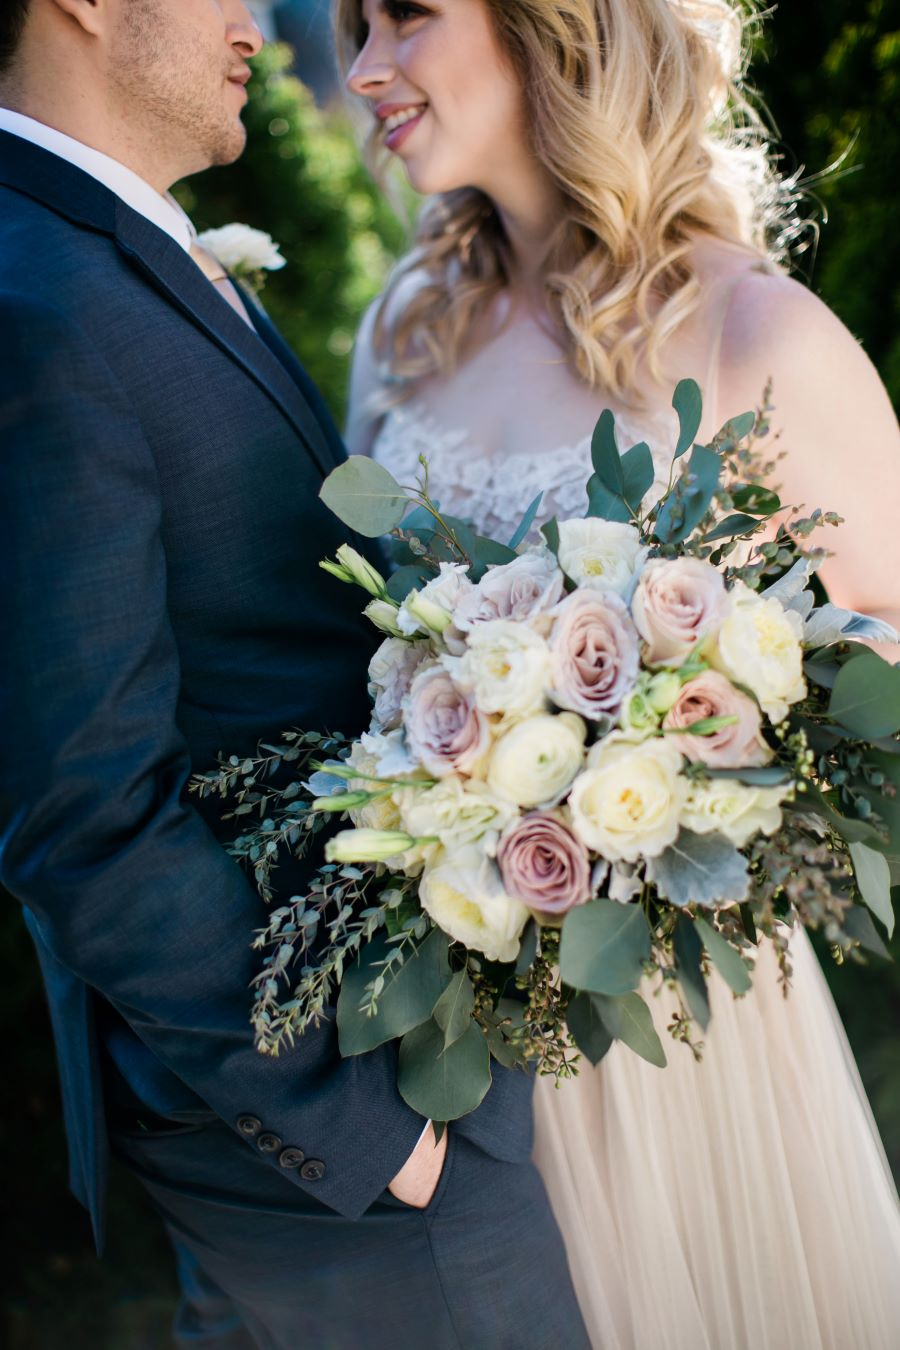 Bride and groom smiling close with bouquet / Elopement / Spring / March / Dusty Rose